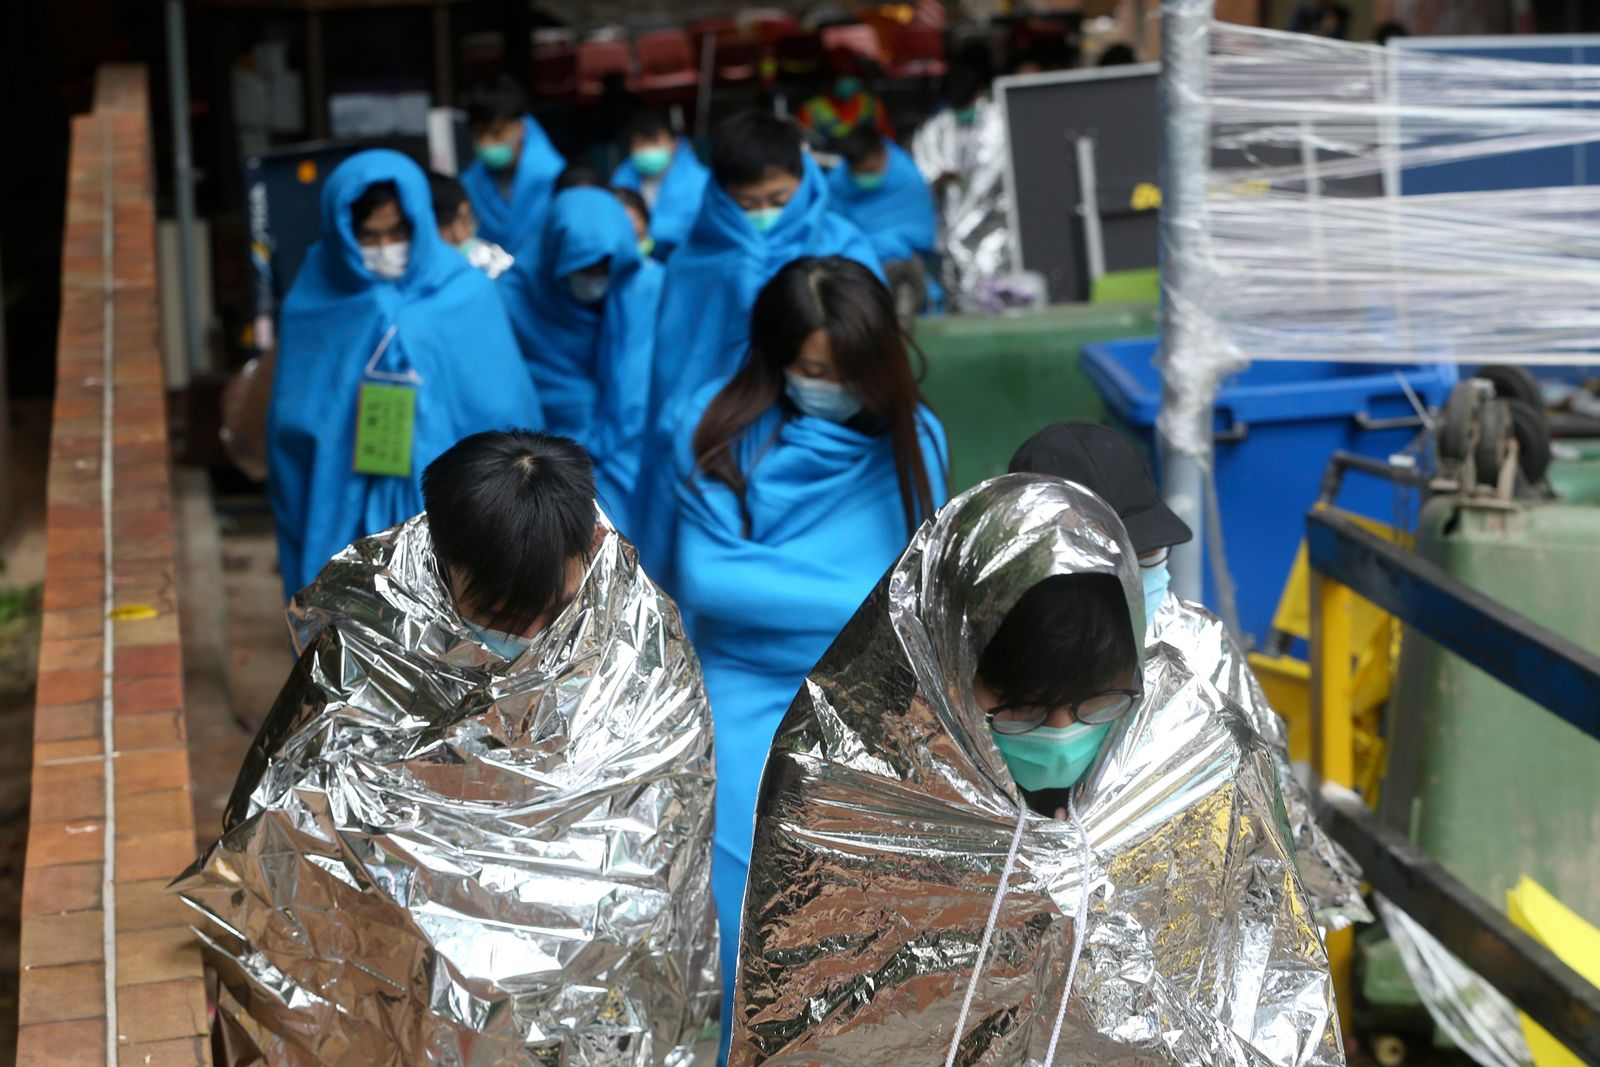 Injured protesters huddle under blankets as they walk at the Hong Kong Polytechnic University in Hong Kong, Tuesday, Nov. 19, 2019. (AP Photo/Achmad Ibrahim)